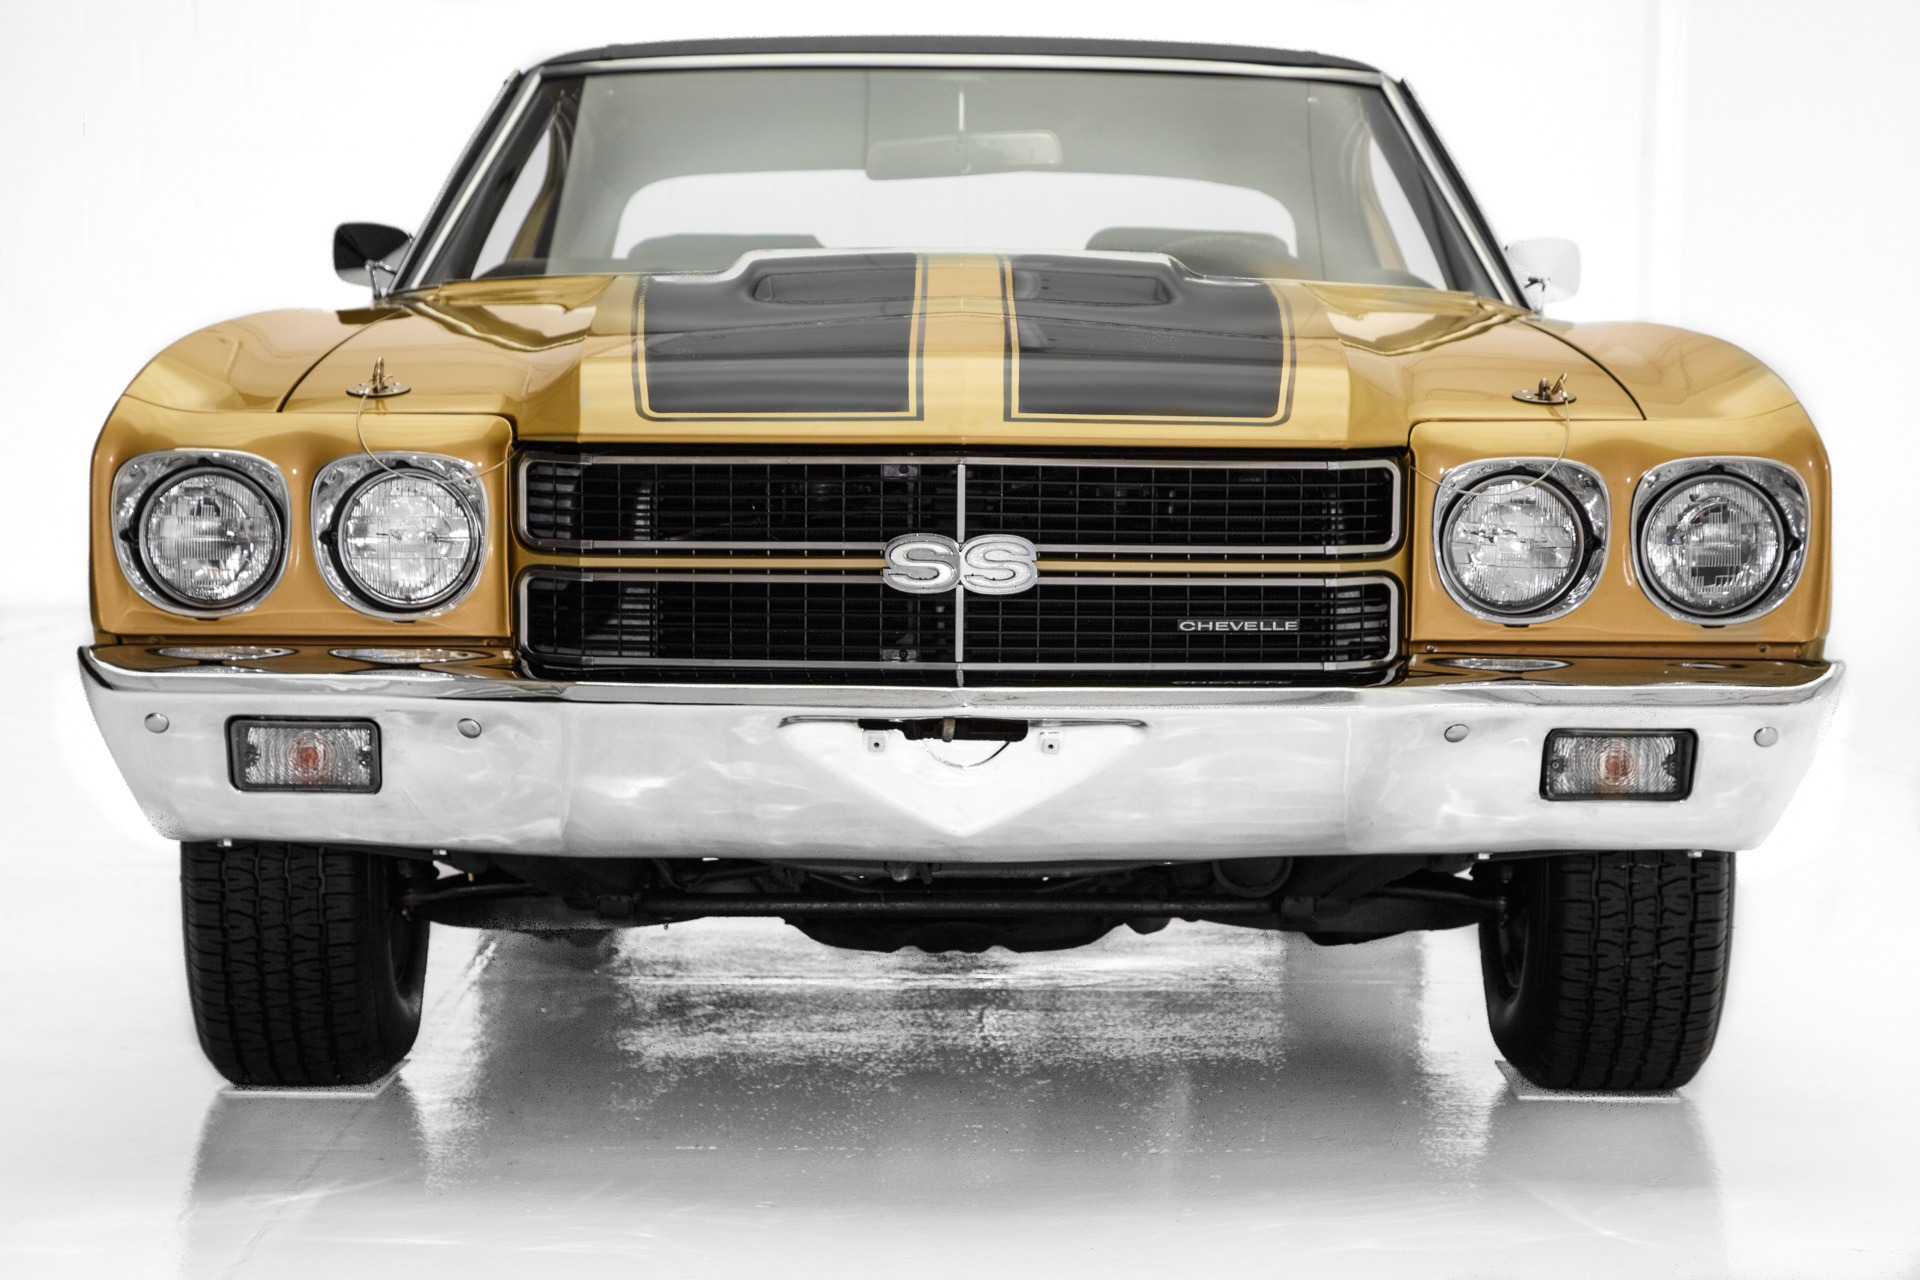 1970 Chevrolet Chevelle True SS \'s Matching 396 - American Dream ...